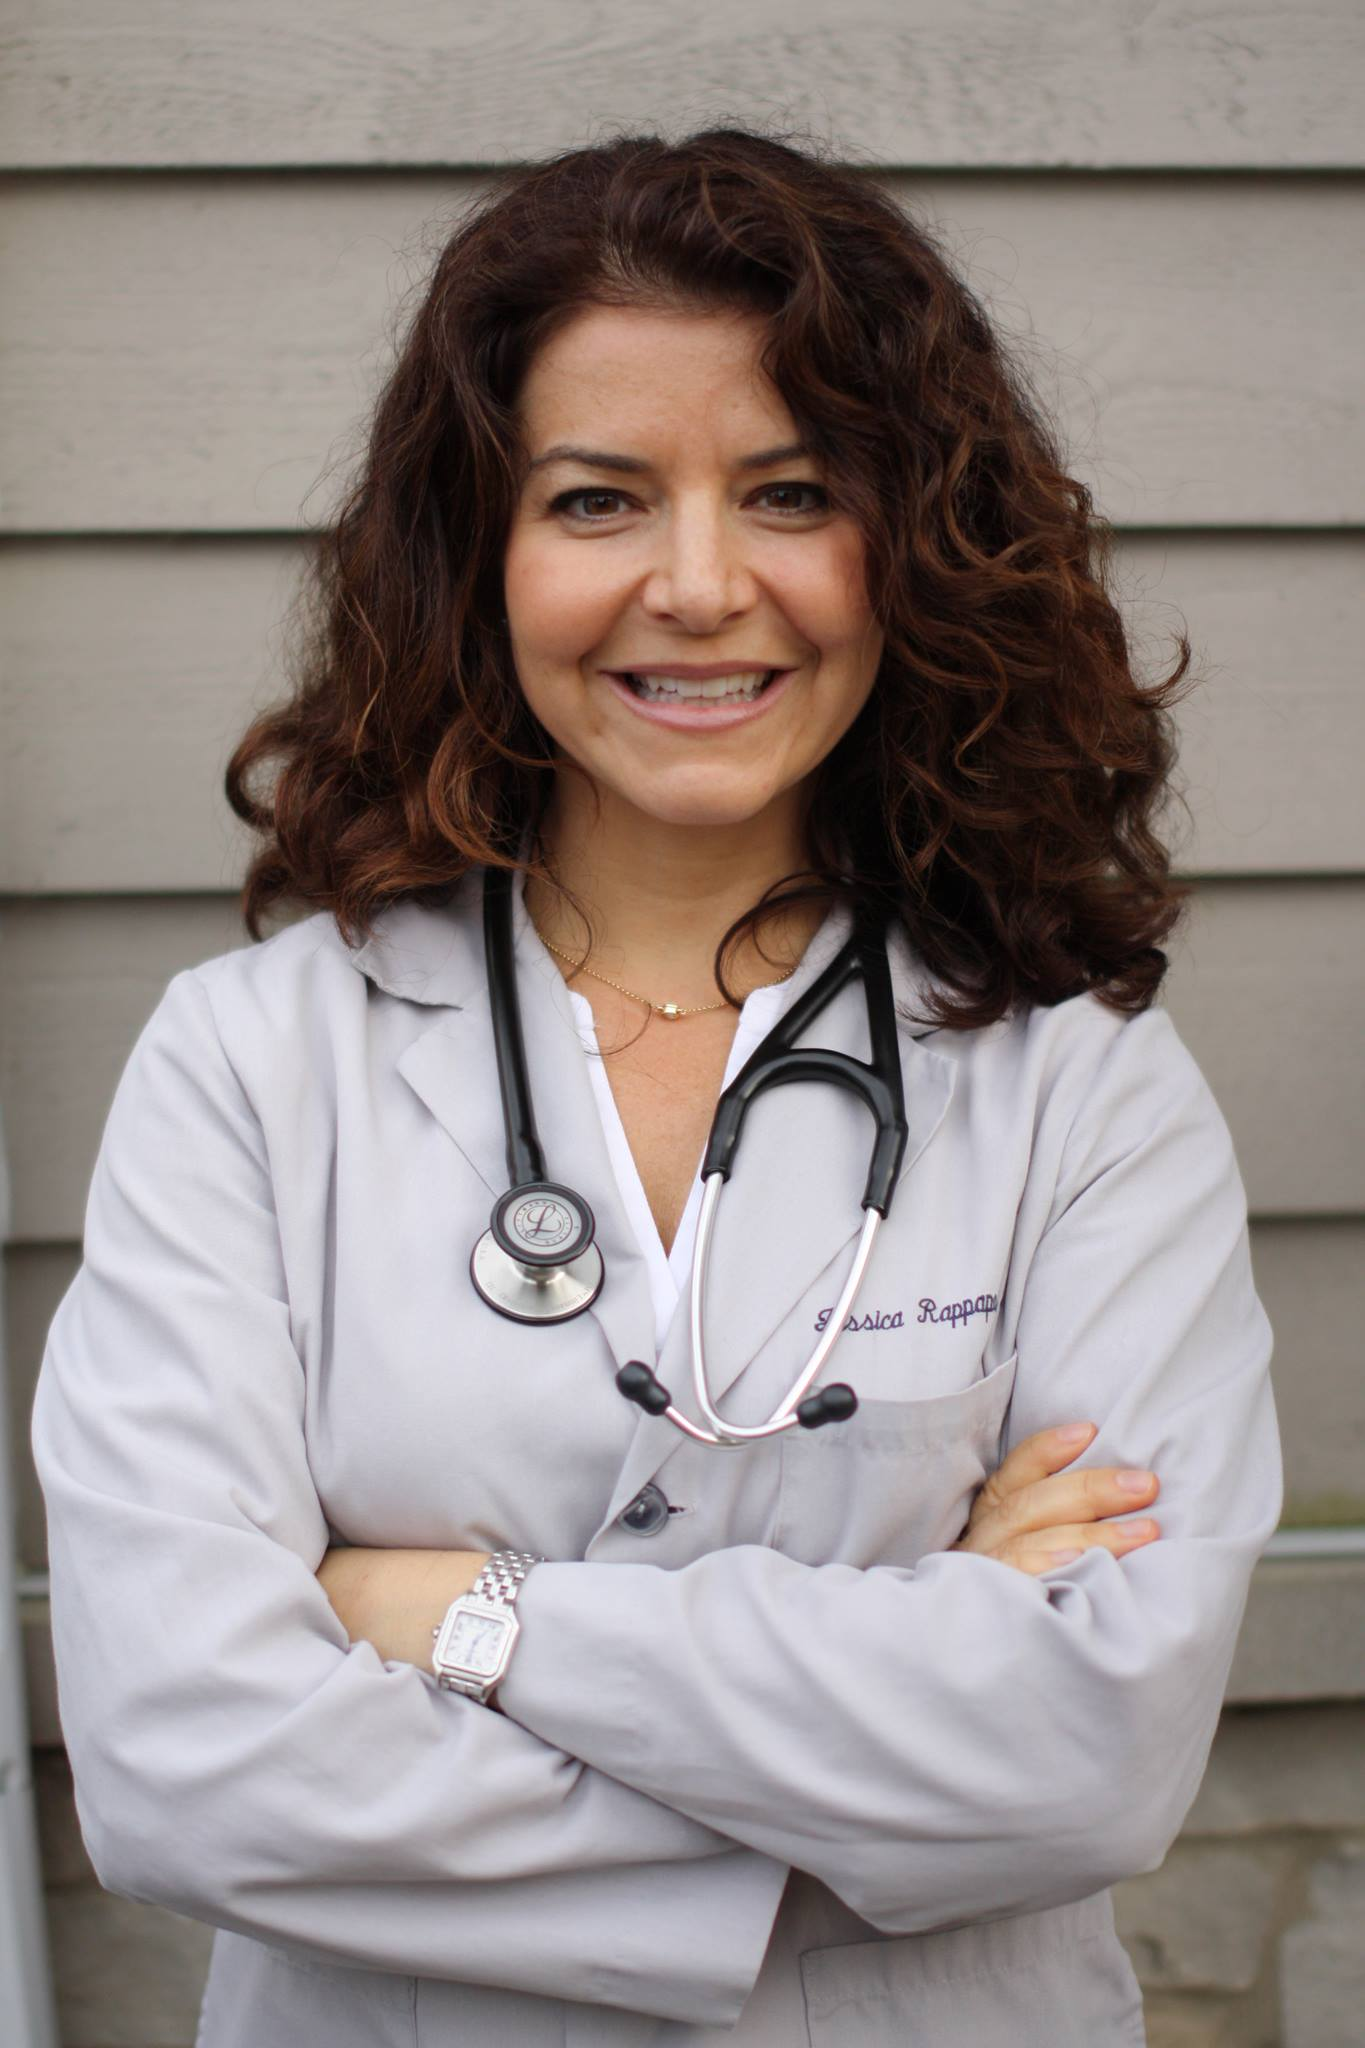 Dr. Jessica Rappaport, MD